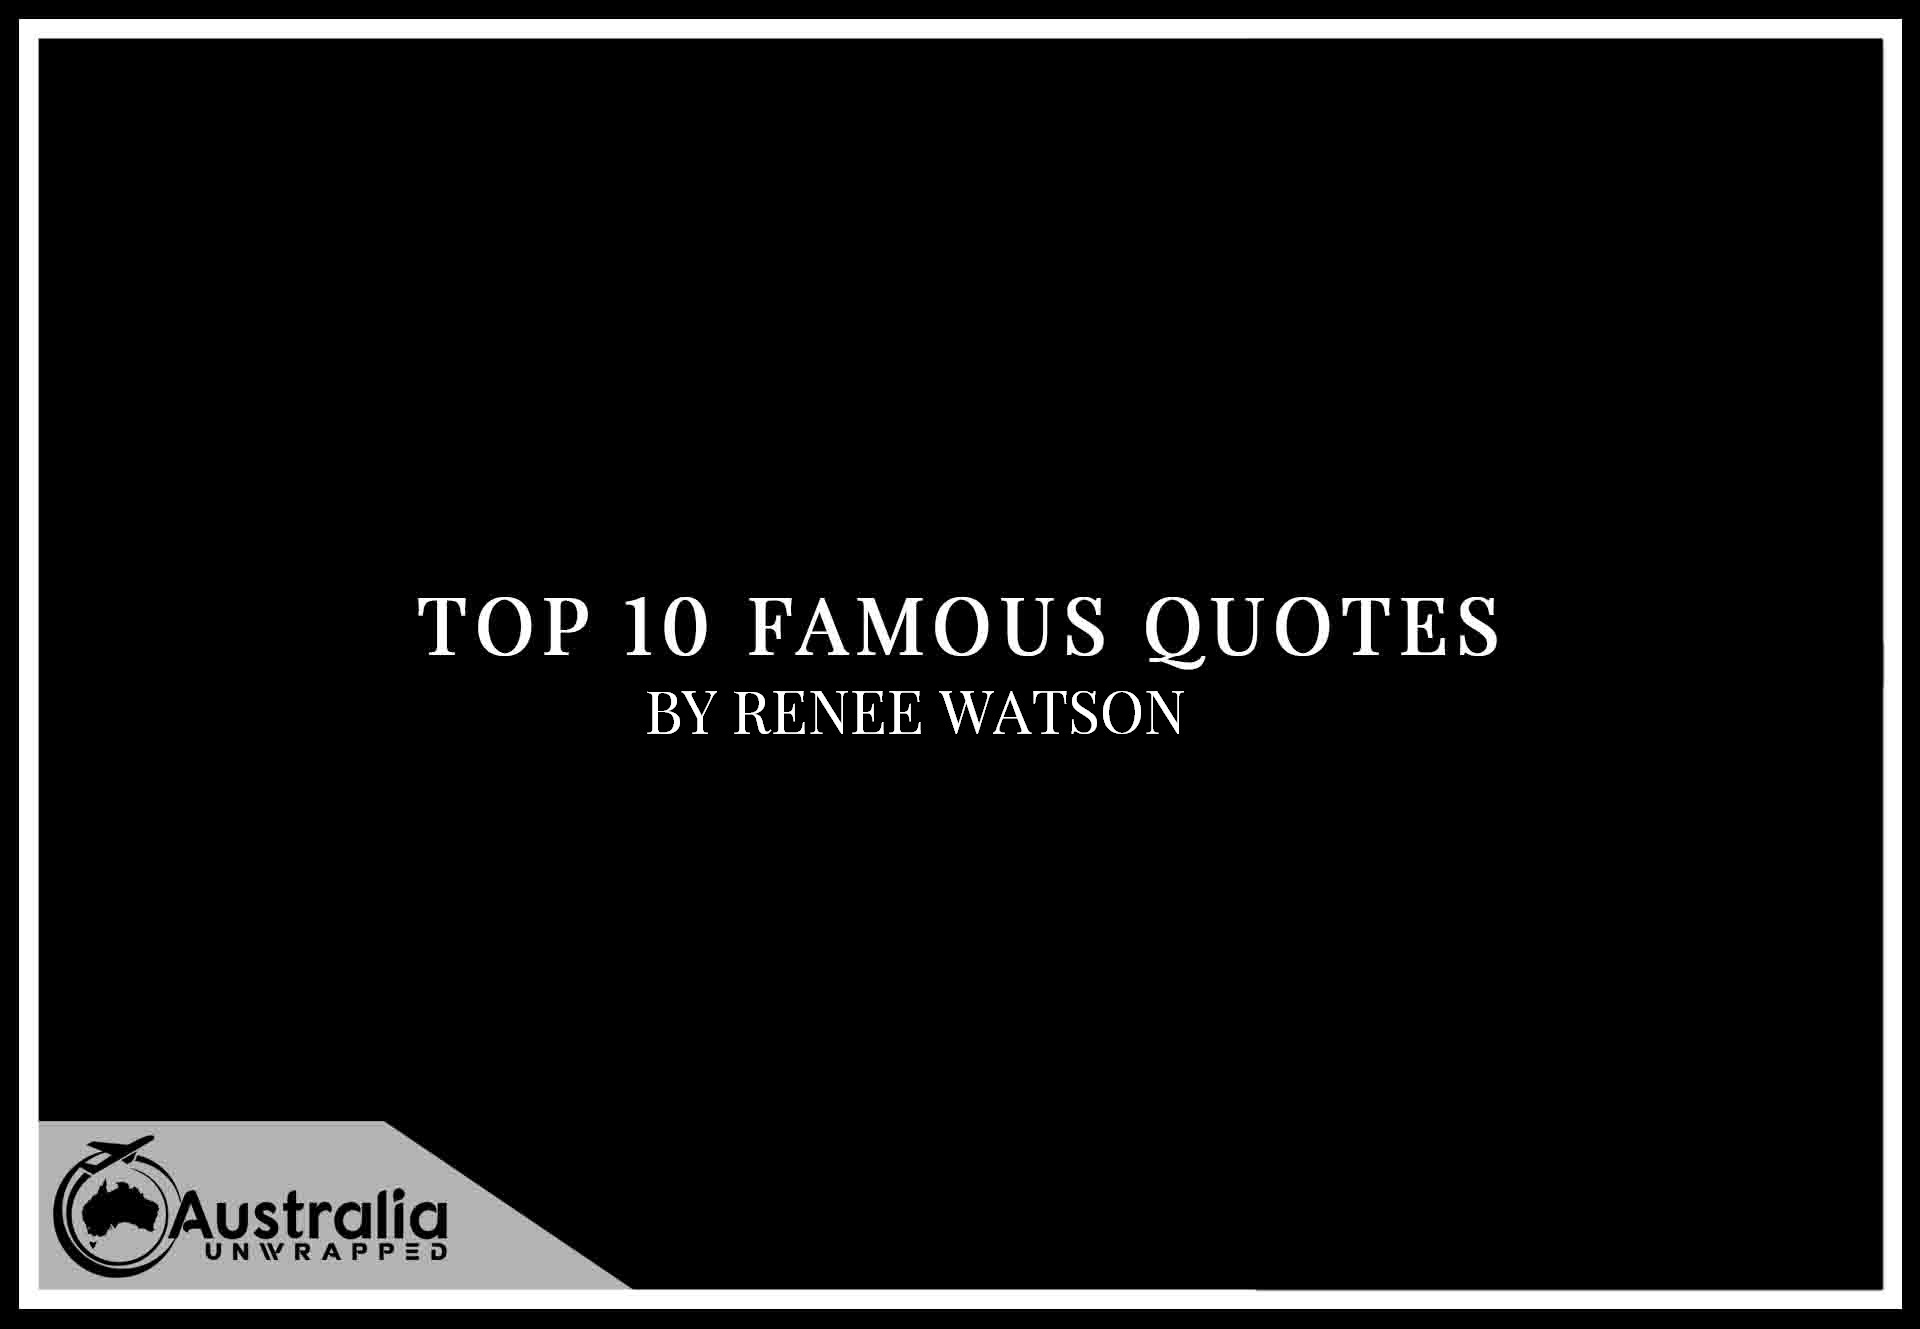 Renée Watson's Top 10 Popular and Famous Quotes